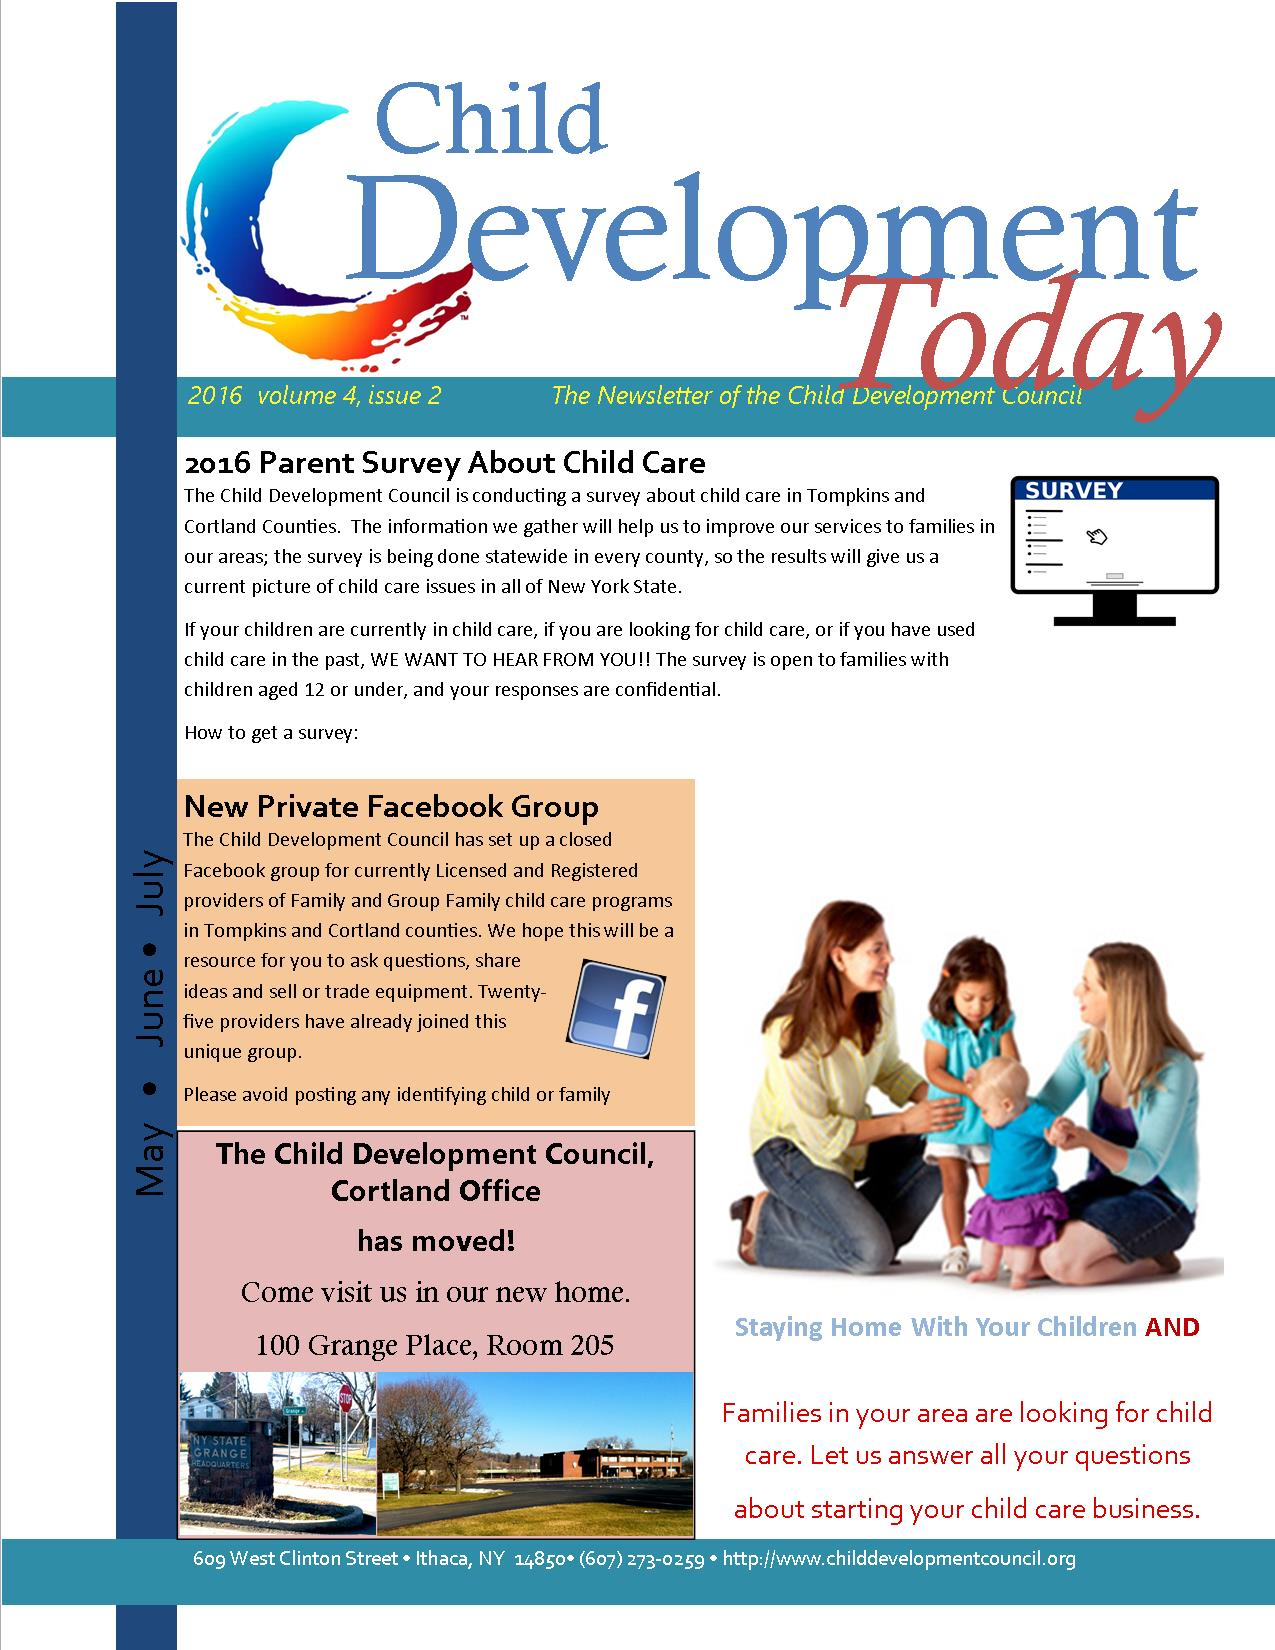 childcare child development There are many child care and development programs in california these programs are for children from birth to age twelve they offer early learning and after-school services to babies, toddlers, children in preschool, and children in kindergarten through sixth grade some programs assist children .